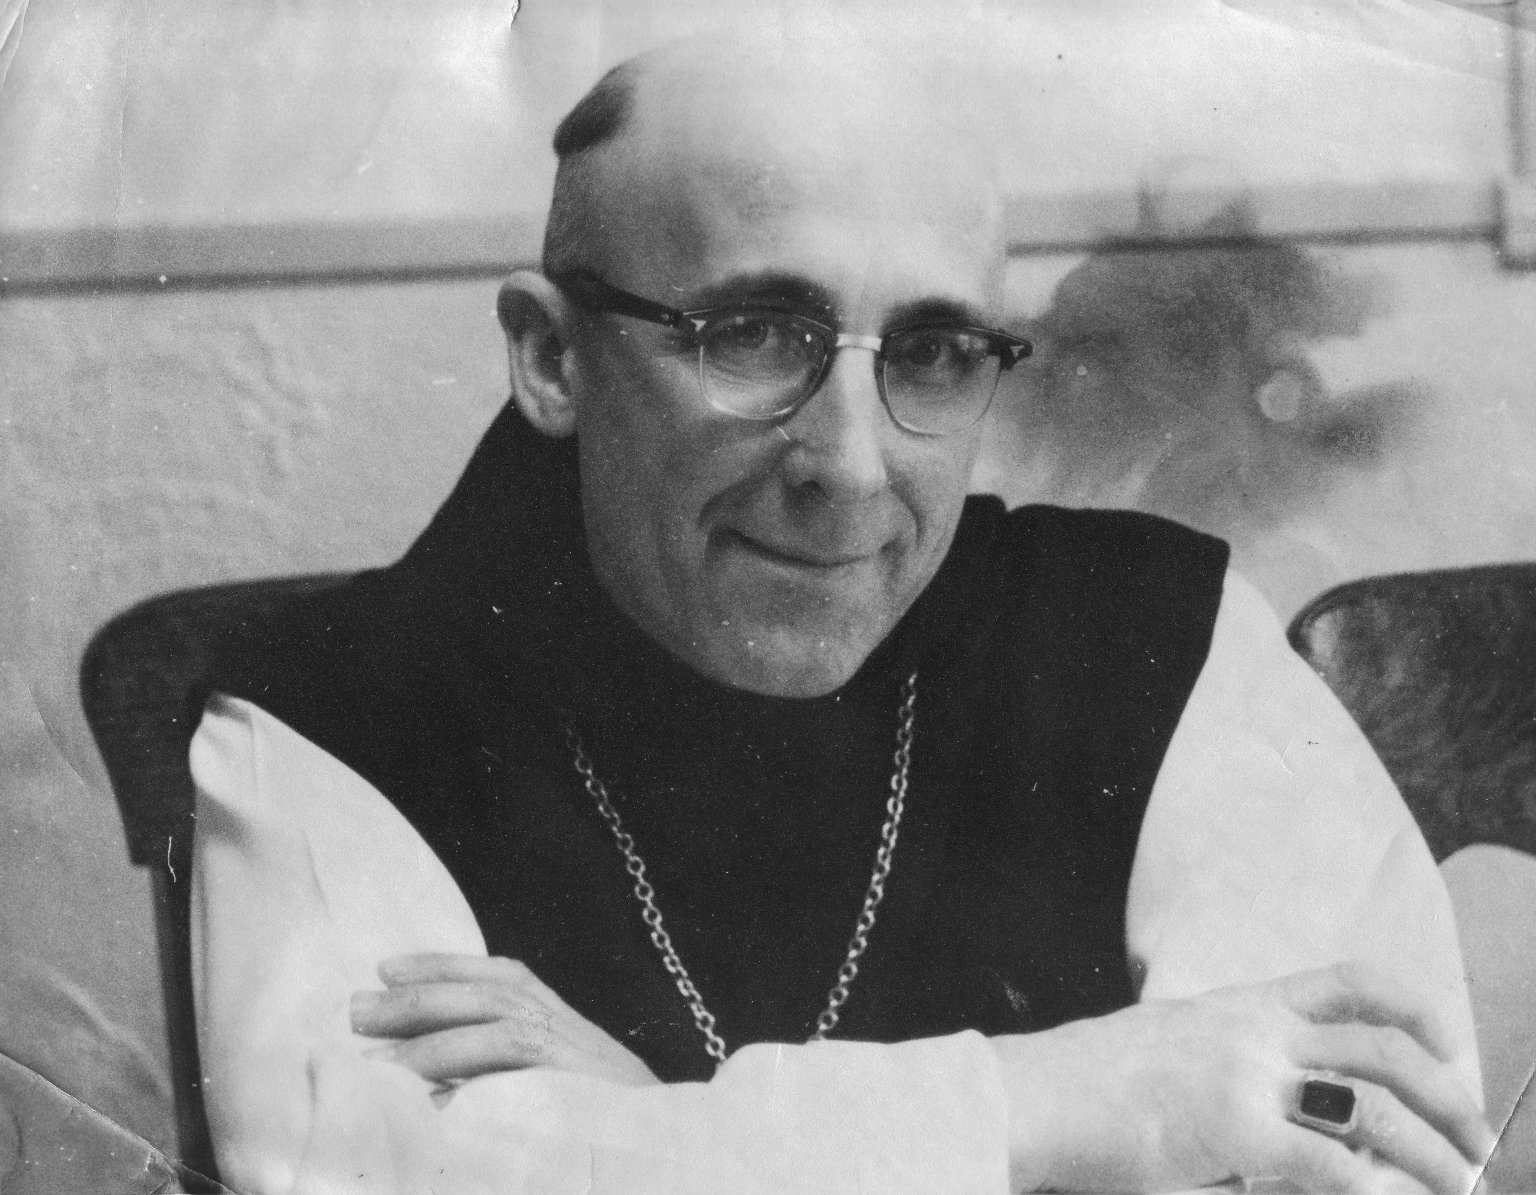 Dom Fulgence Fortier, abbott of Notre Dame Des Praries, a Cistercian monastery in St. Norbert's, Manitoba, Canada, 1955-1969.